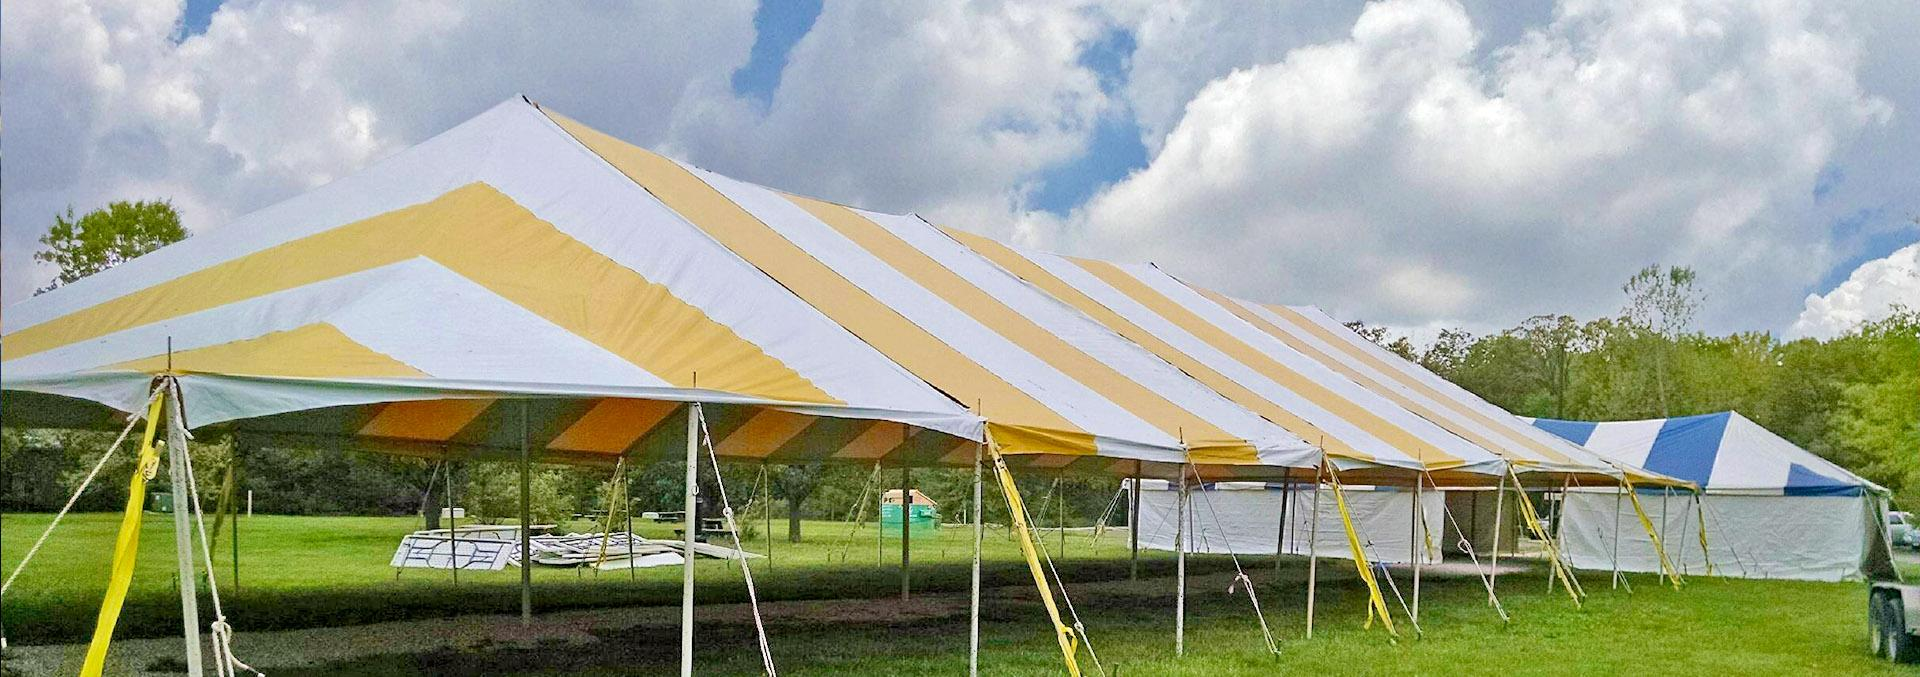 Large Outdoor Party & Event Tents for Sale in Oklahoma ...